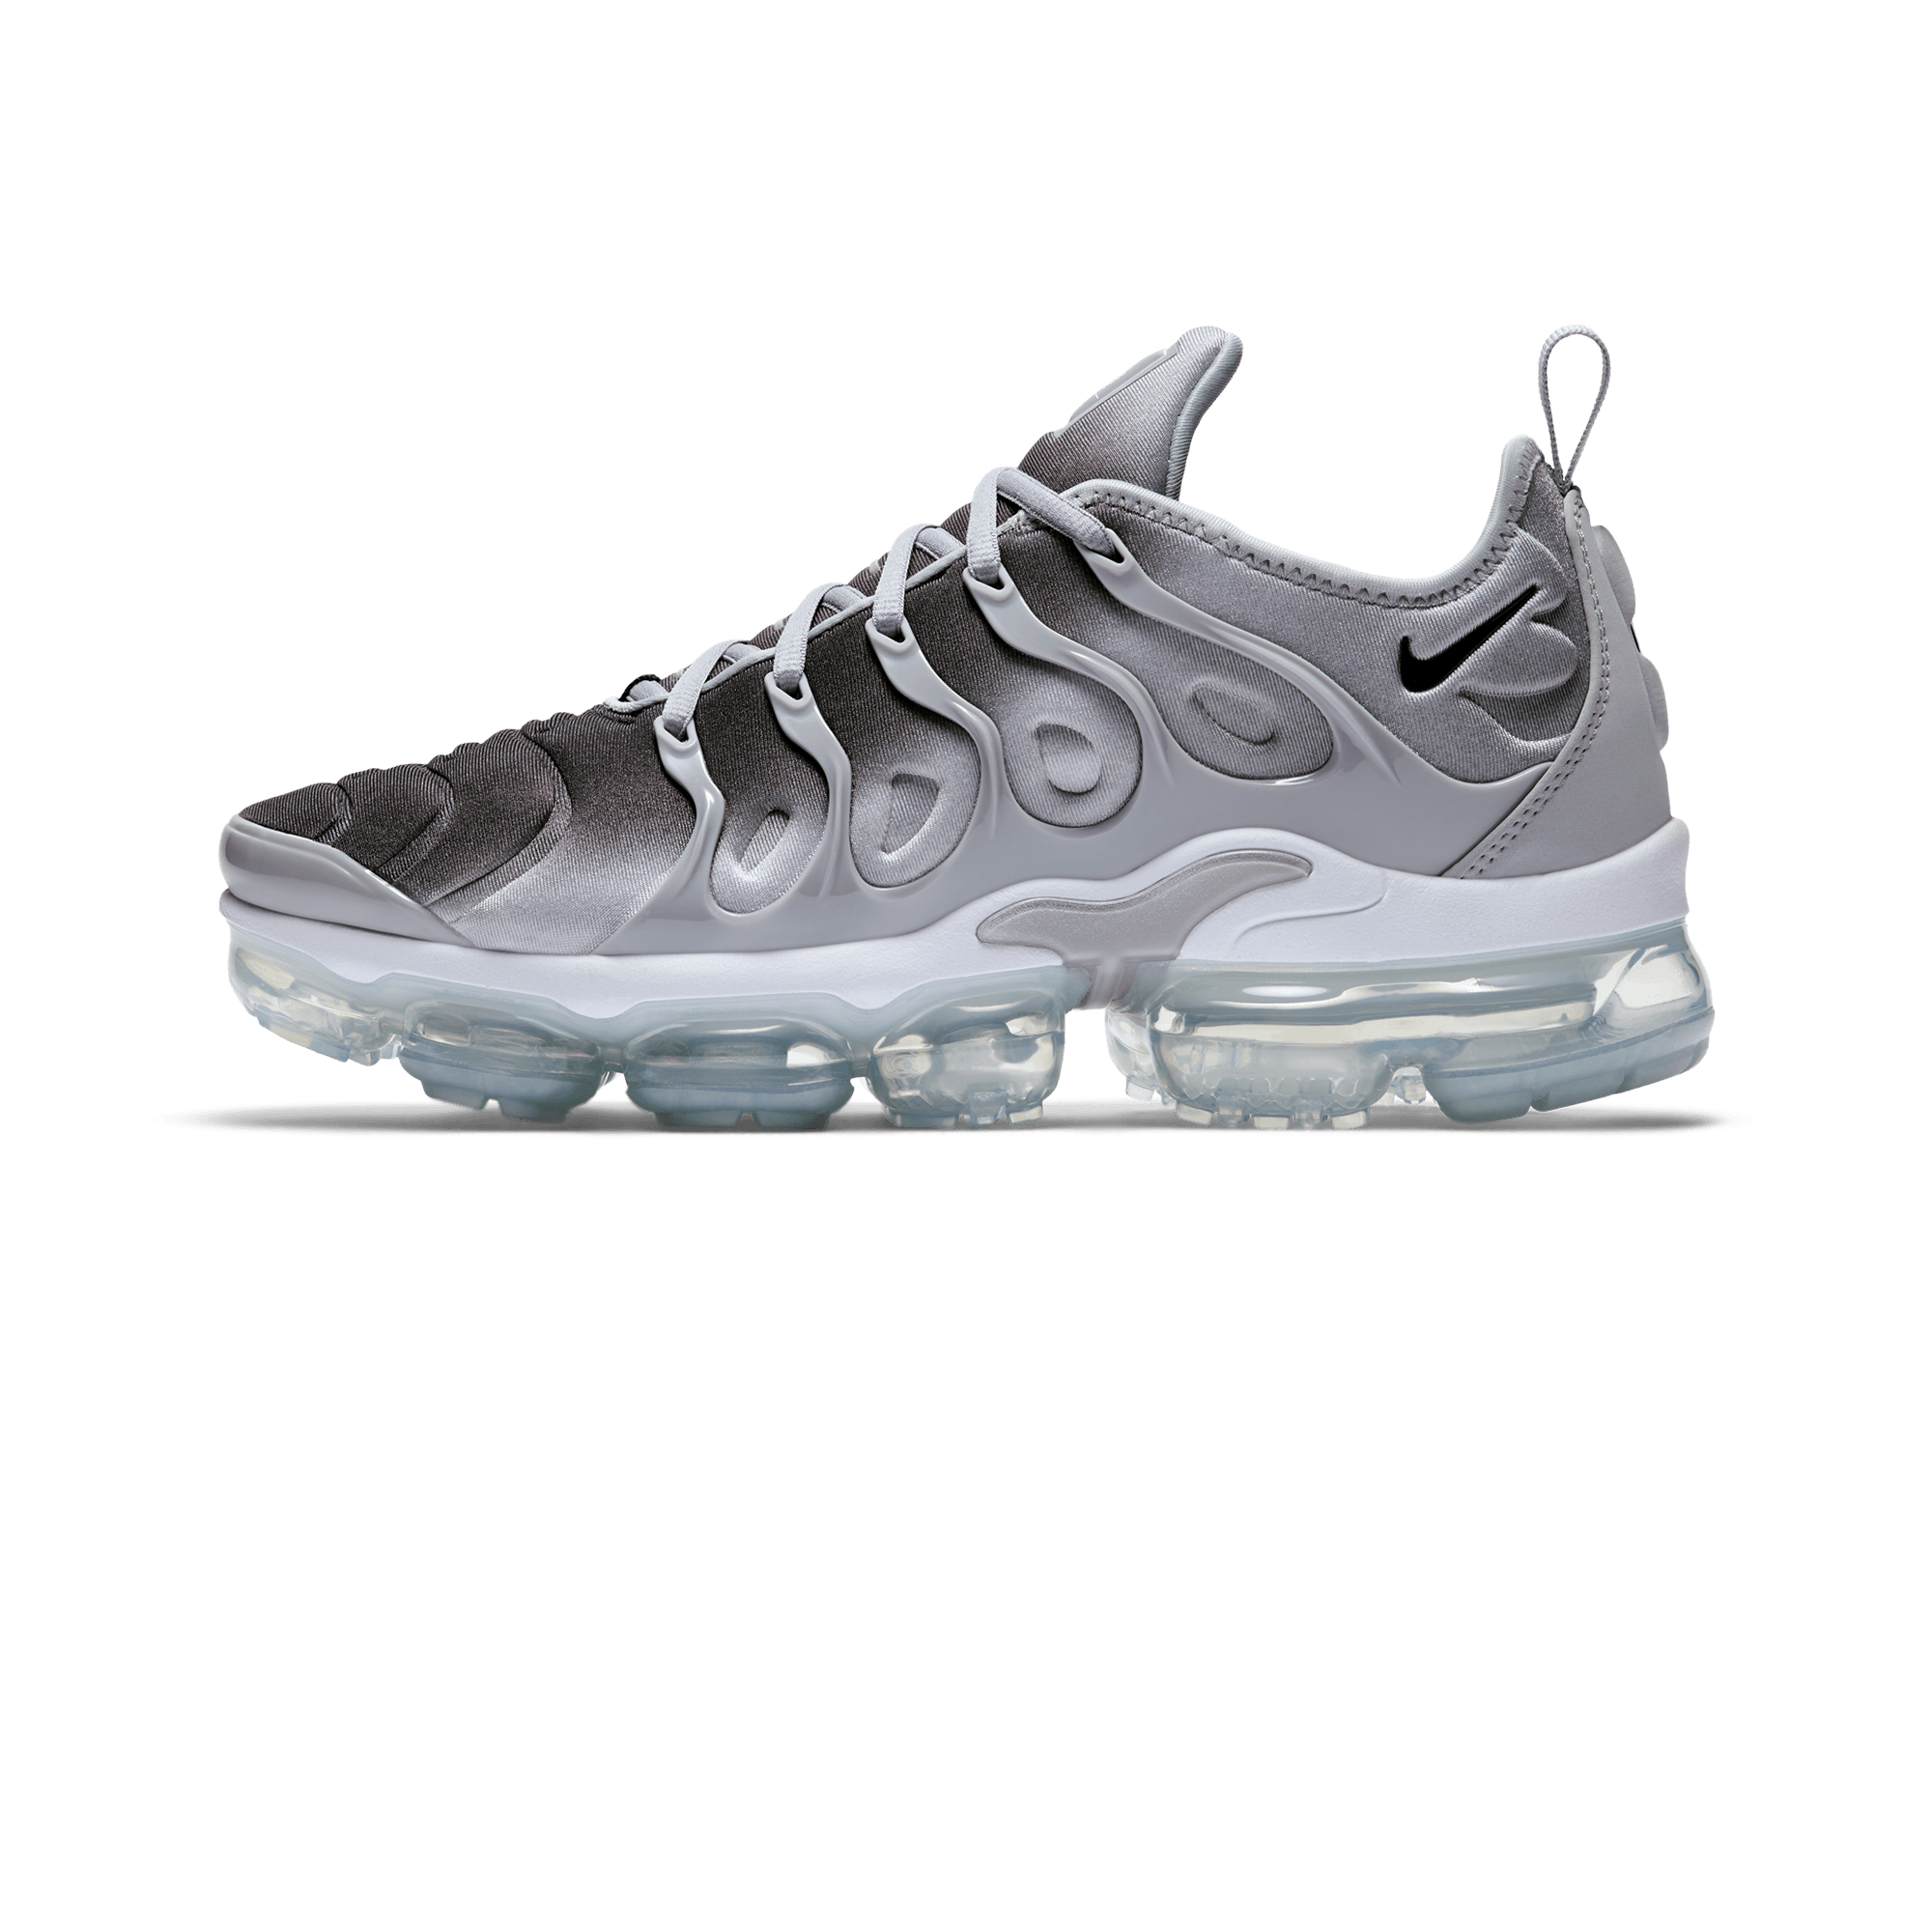 new arrival a3cdd 11173 Nike Air Vapormax Plus wolf grey / black / white - Men | Holypopstore.com